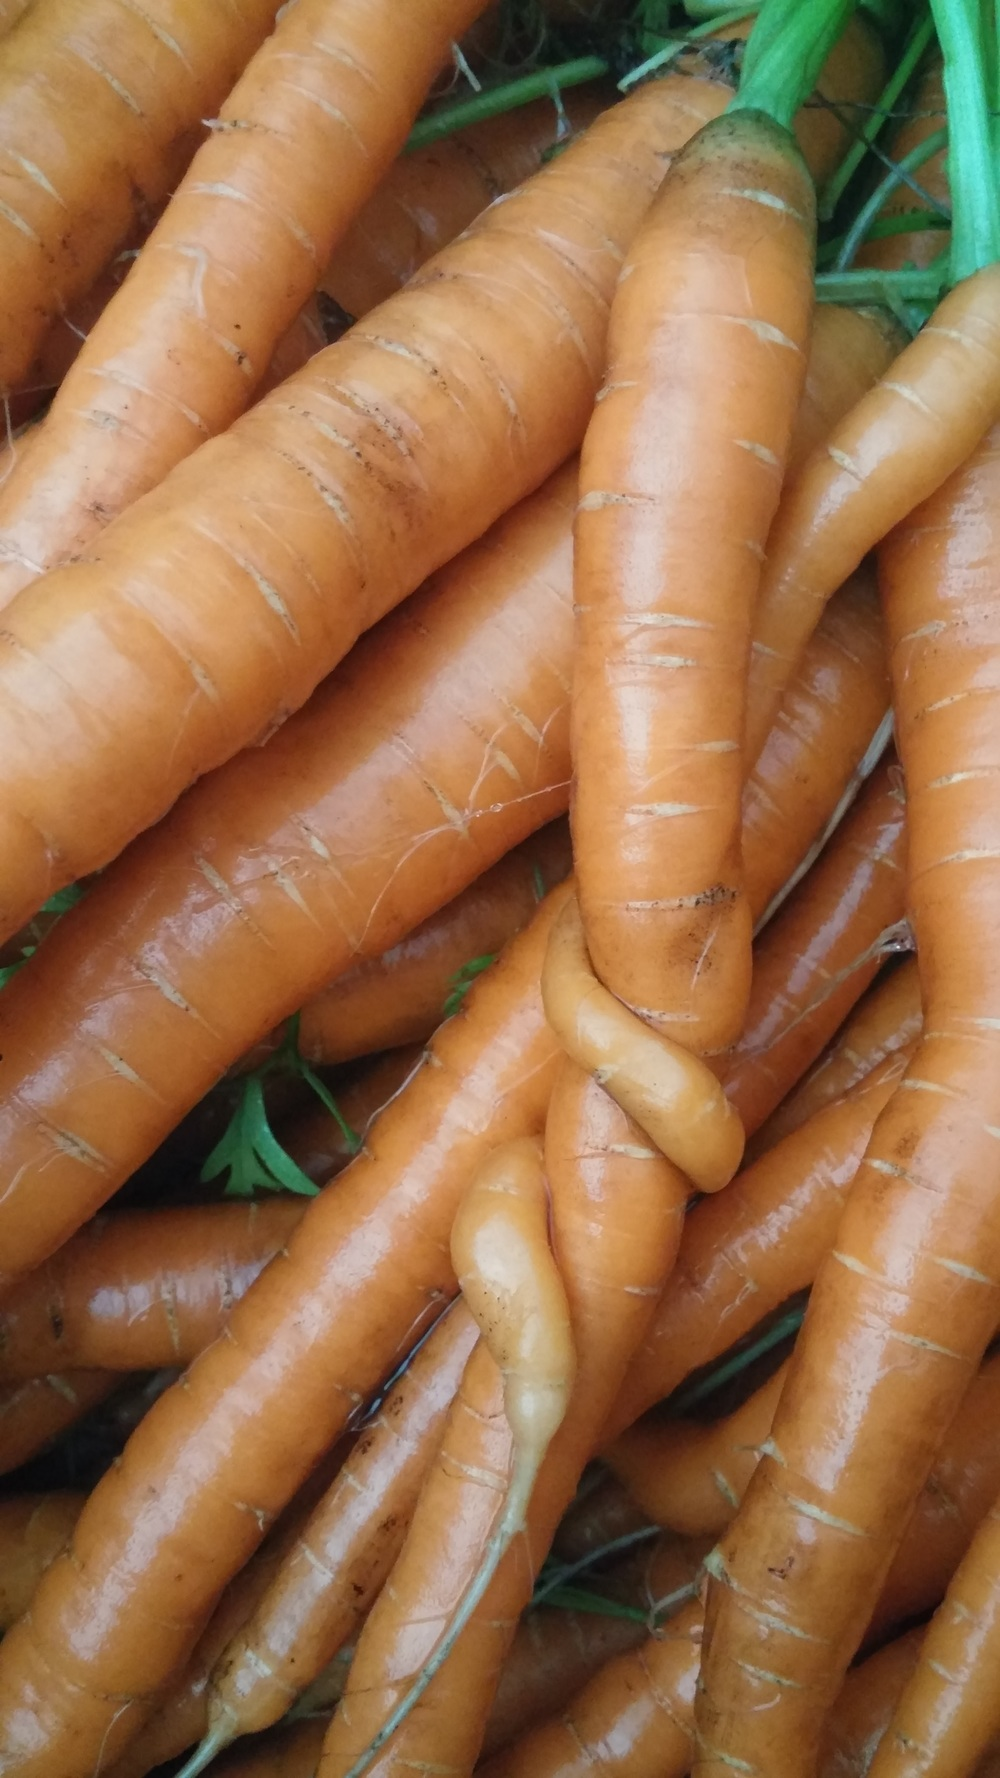 carrots entwined.jpg